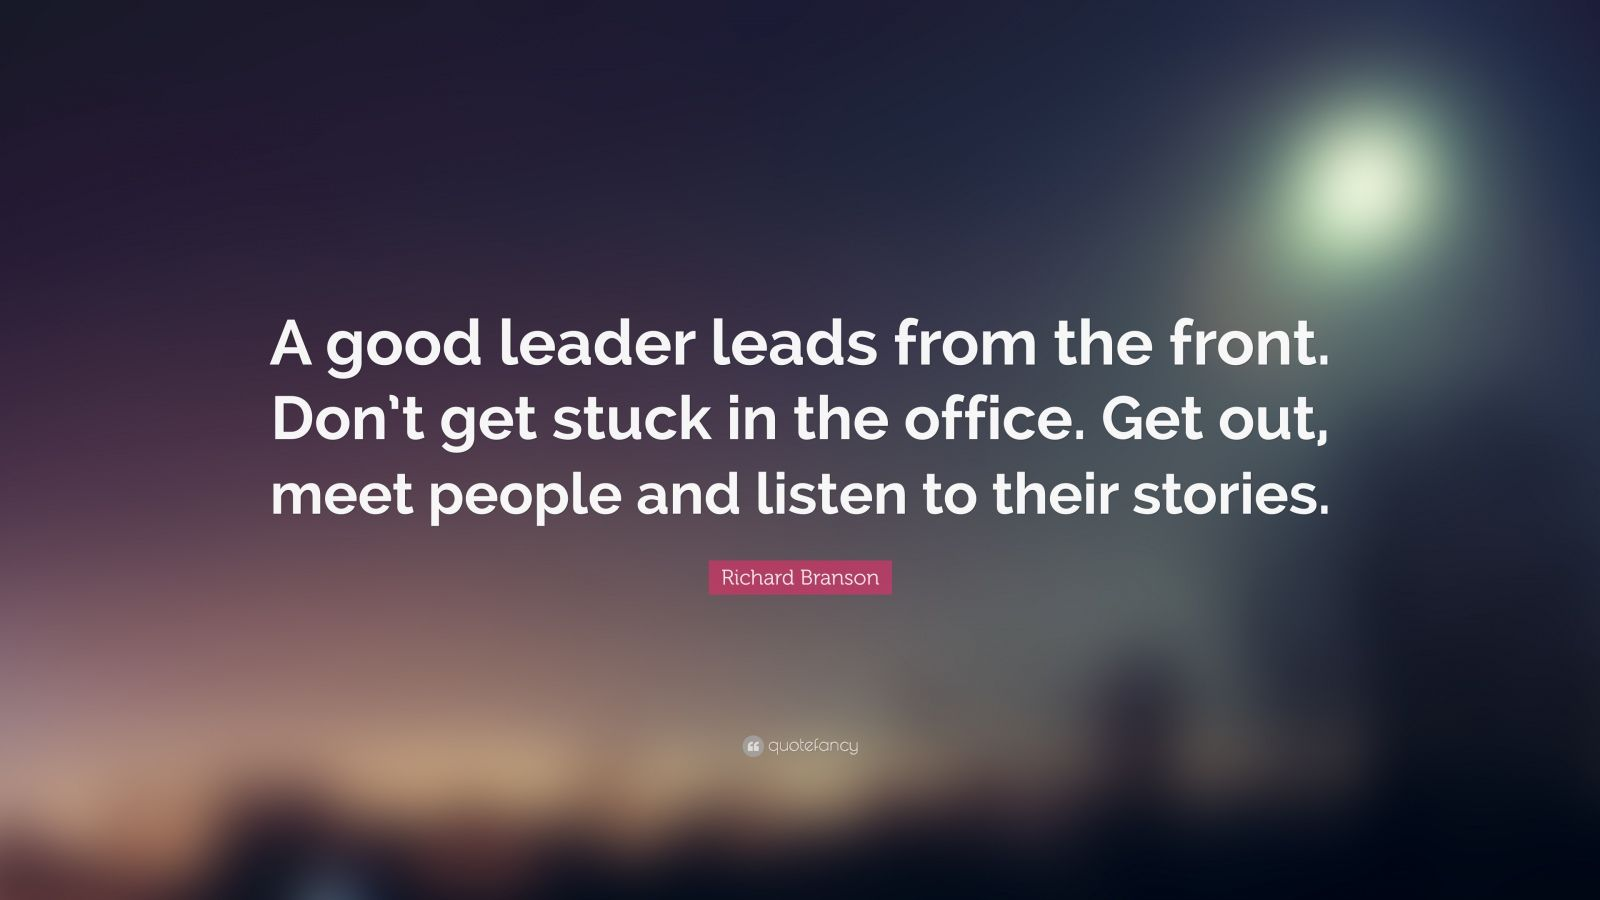 """Richard Branson Quote: """"A good leader leads from the front. Don't get stuck in the office. Get out, meet people and listen to their stories."""""""